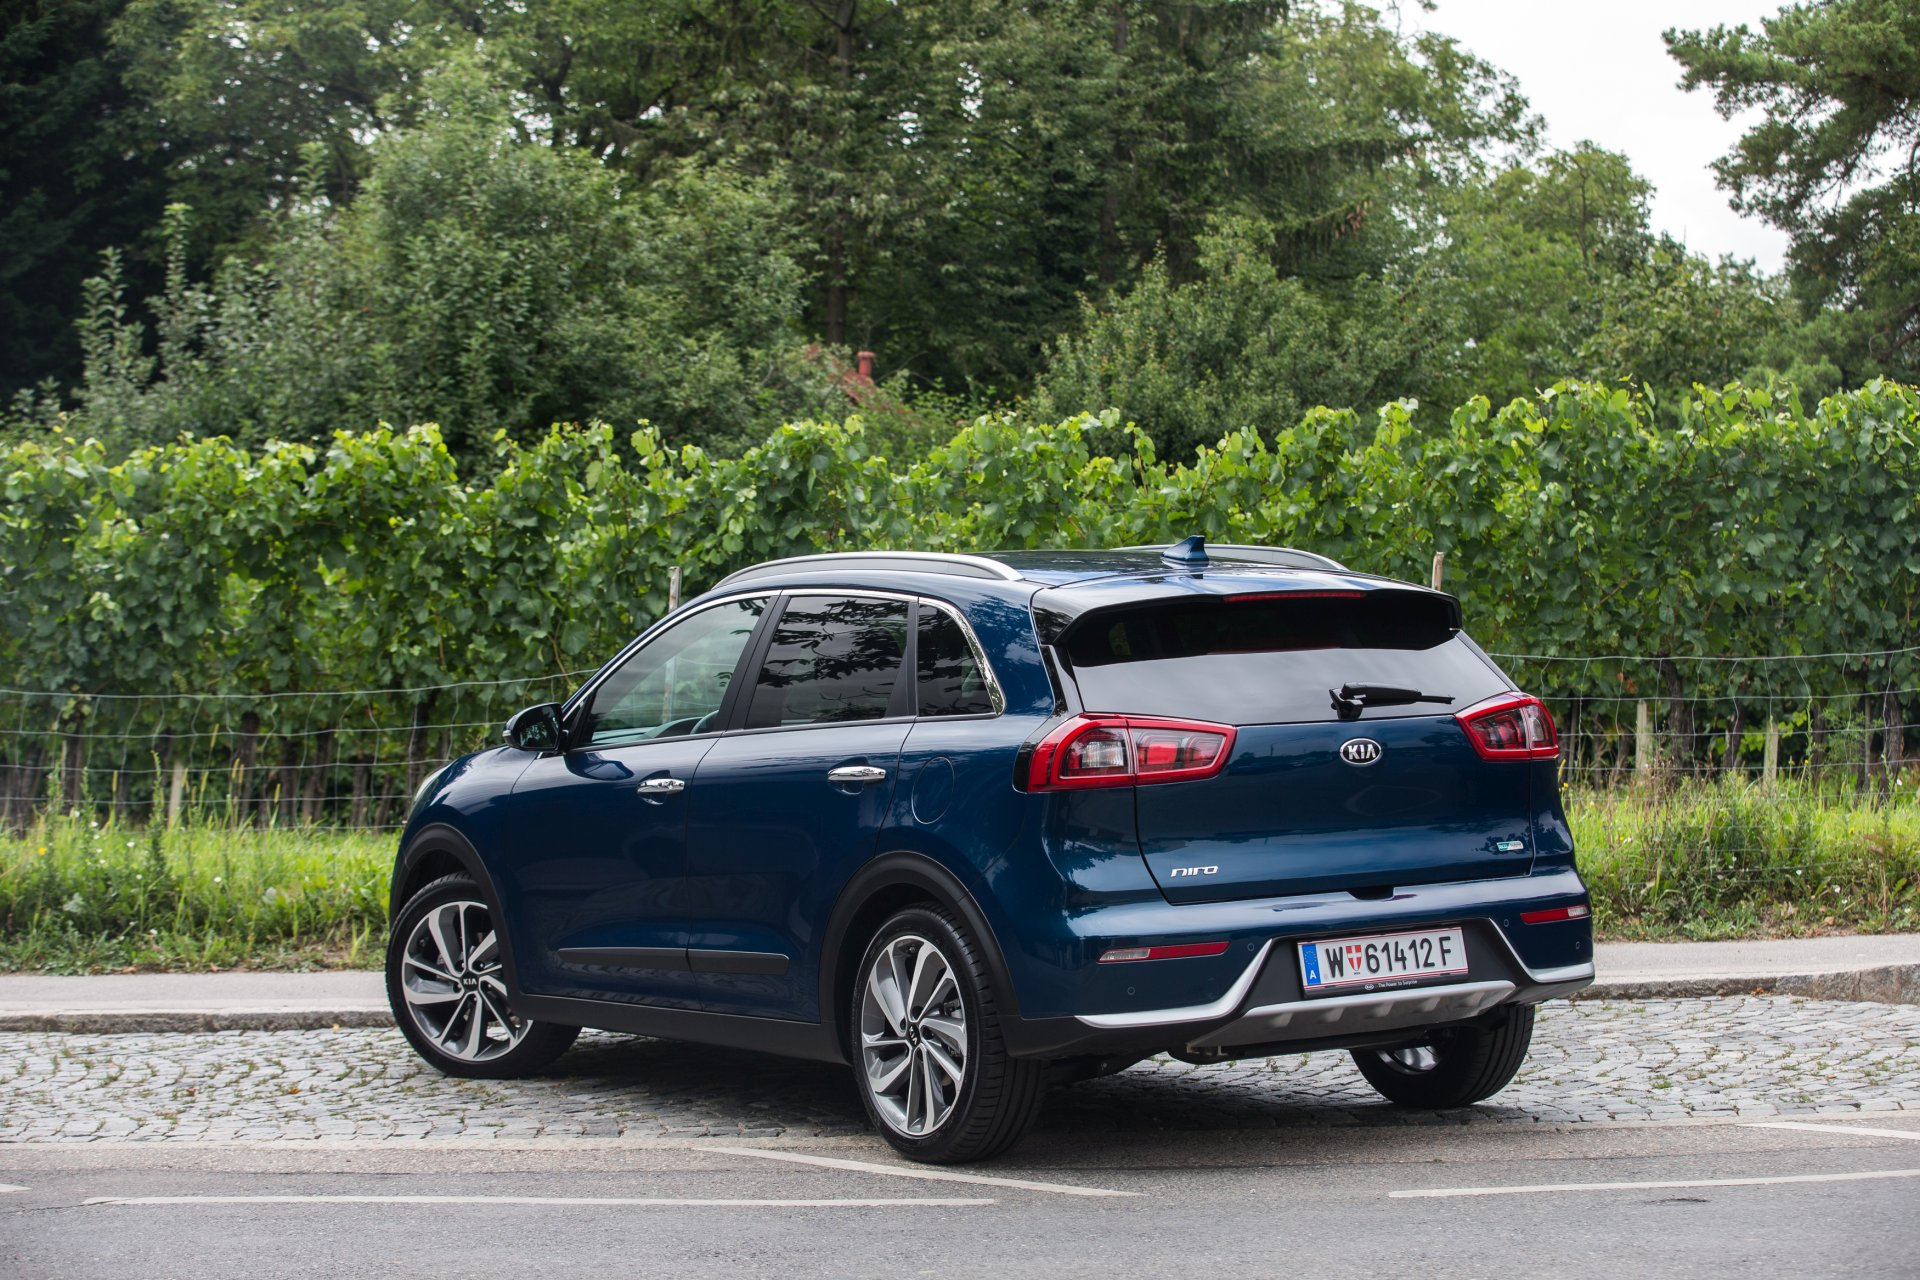 test kia niro 1 6 gdi hybrid platin alles auto. Black Bedroom Furniture Sets. Home Design Ideas